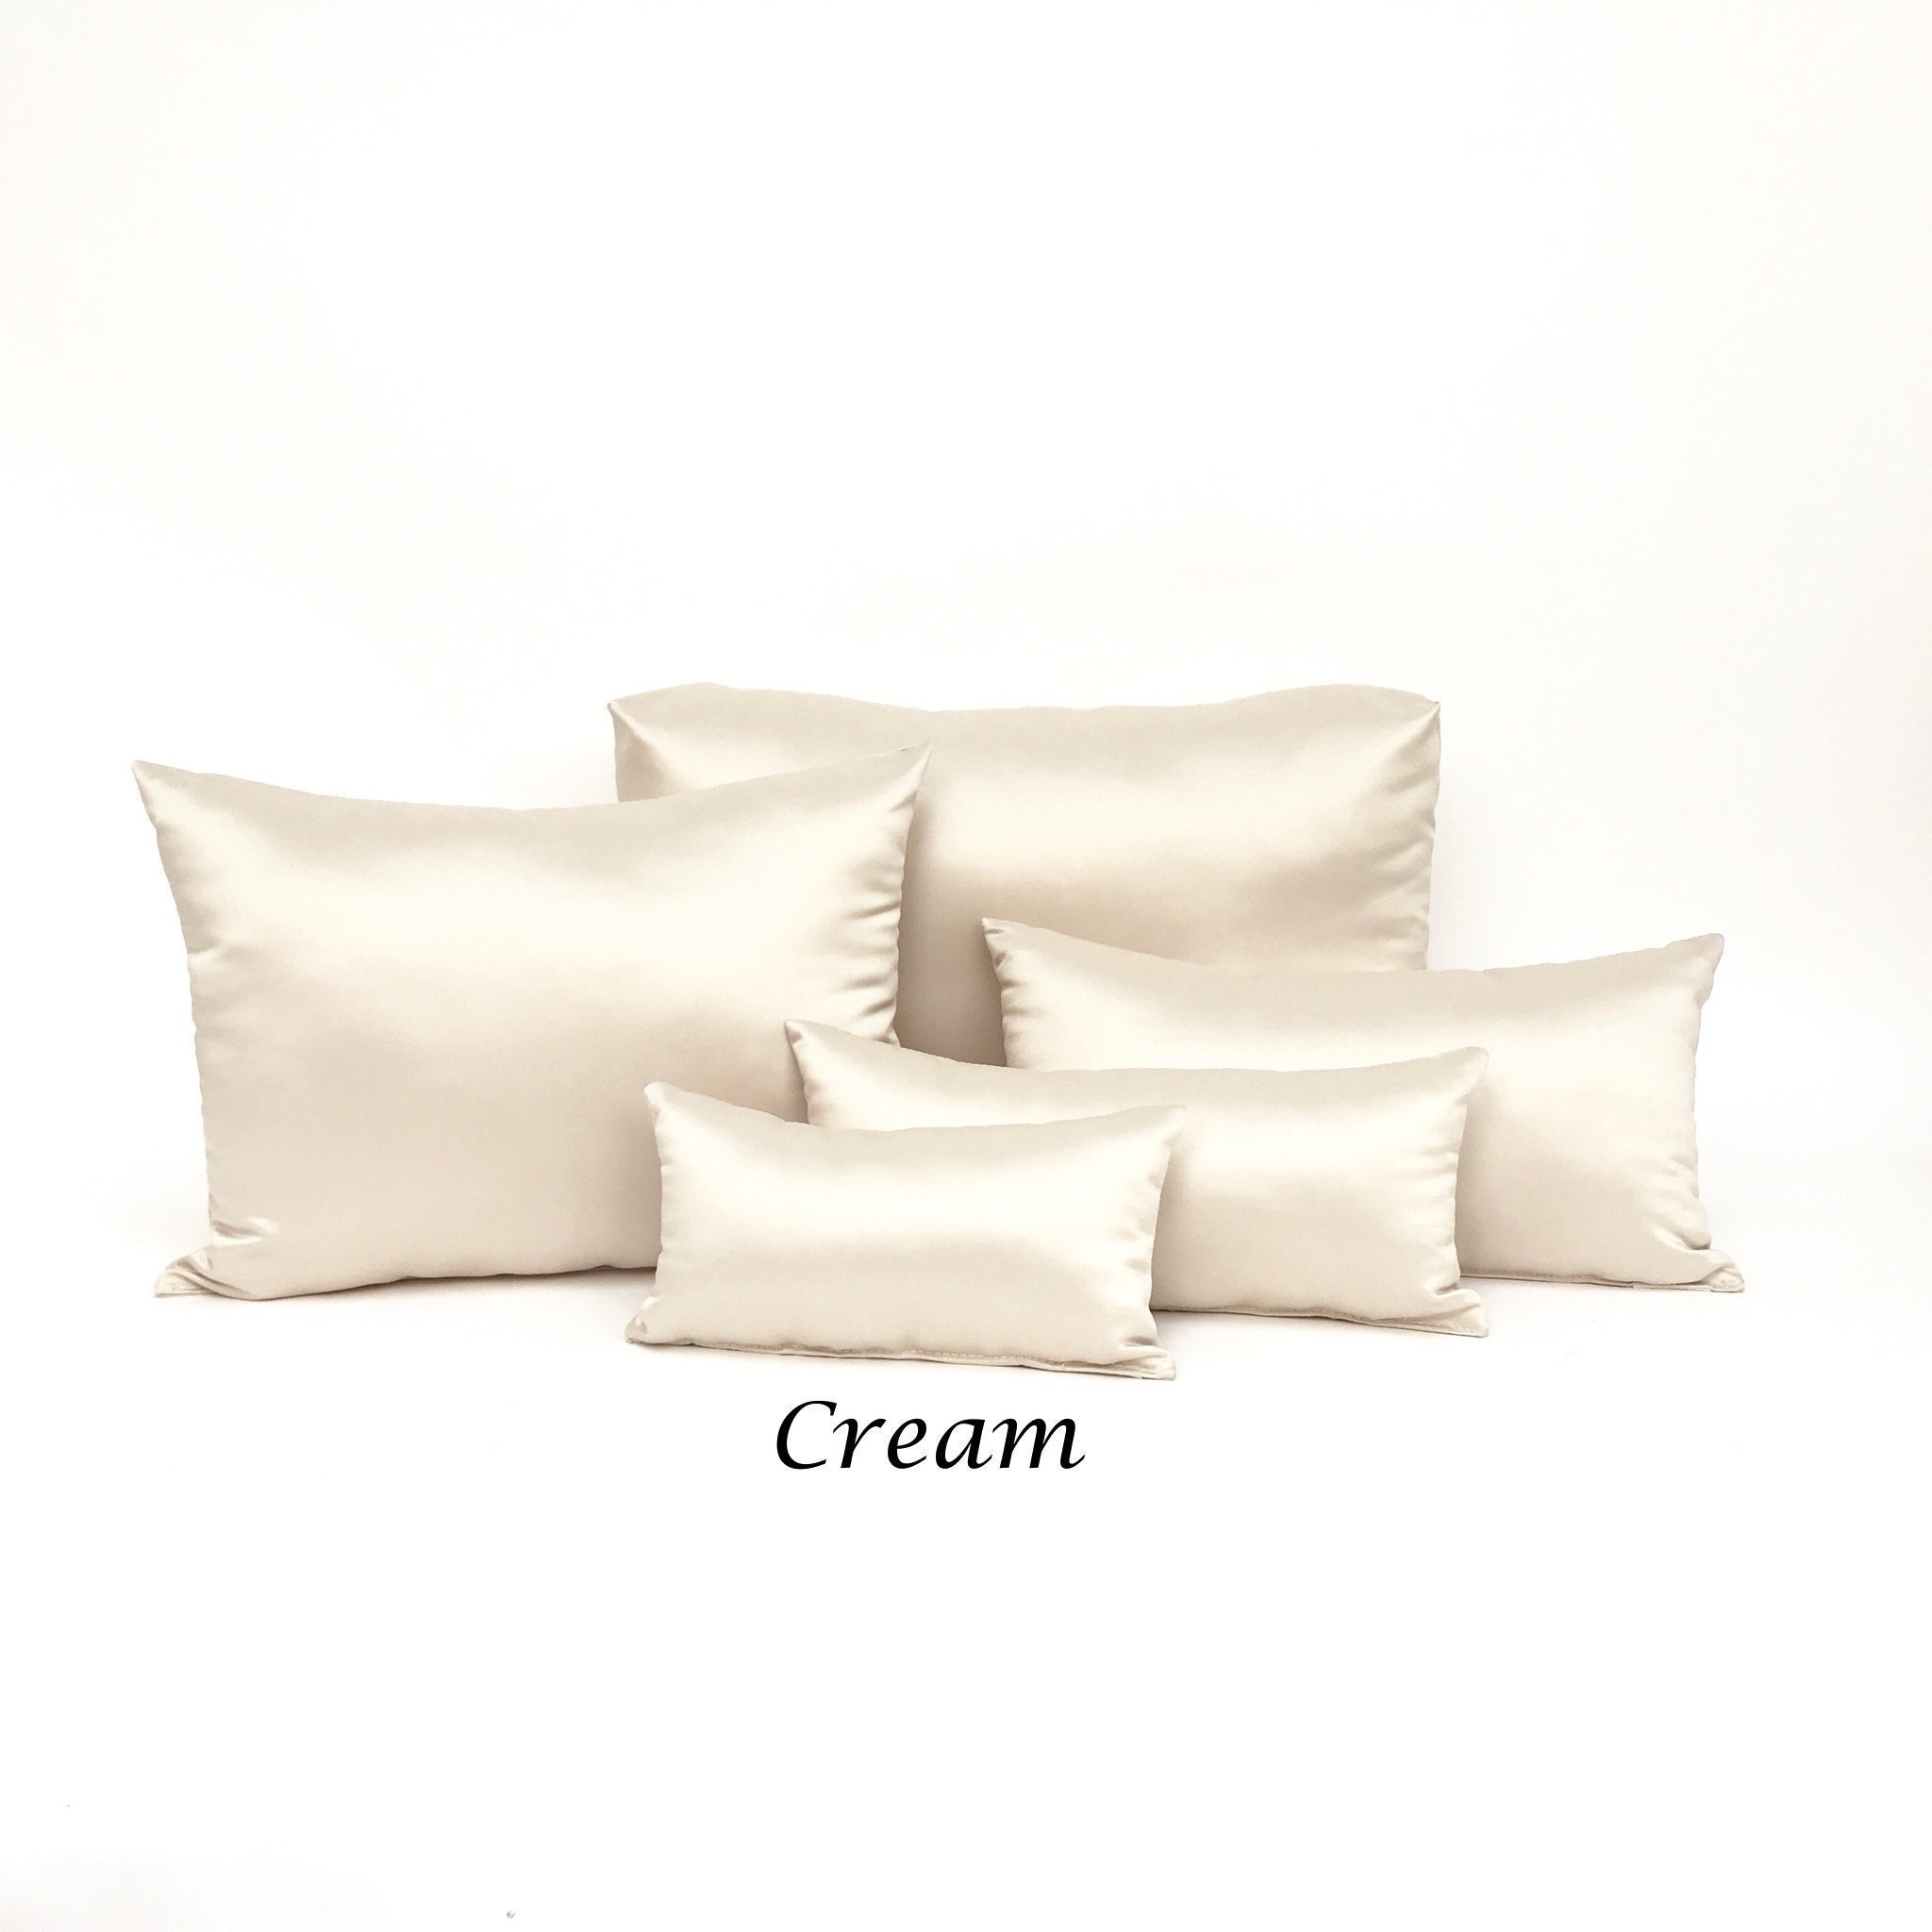 Individual Purse Pillows MADE to ORDER : Luxury Standard Cream Purse Inserts & Boot Stuffers, Unlimited Quantities Inserts for Boutique Designer Purse Protection PB-502